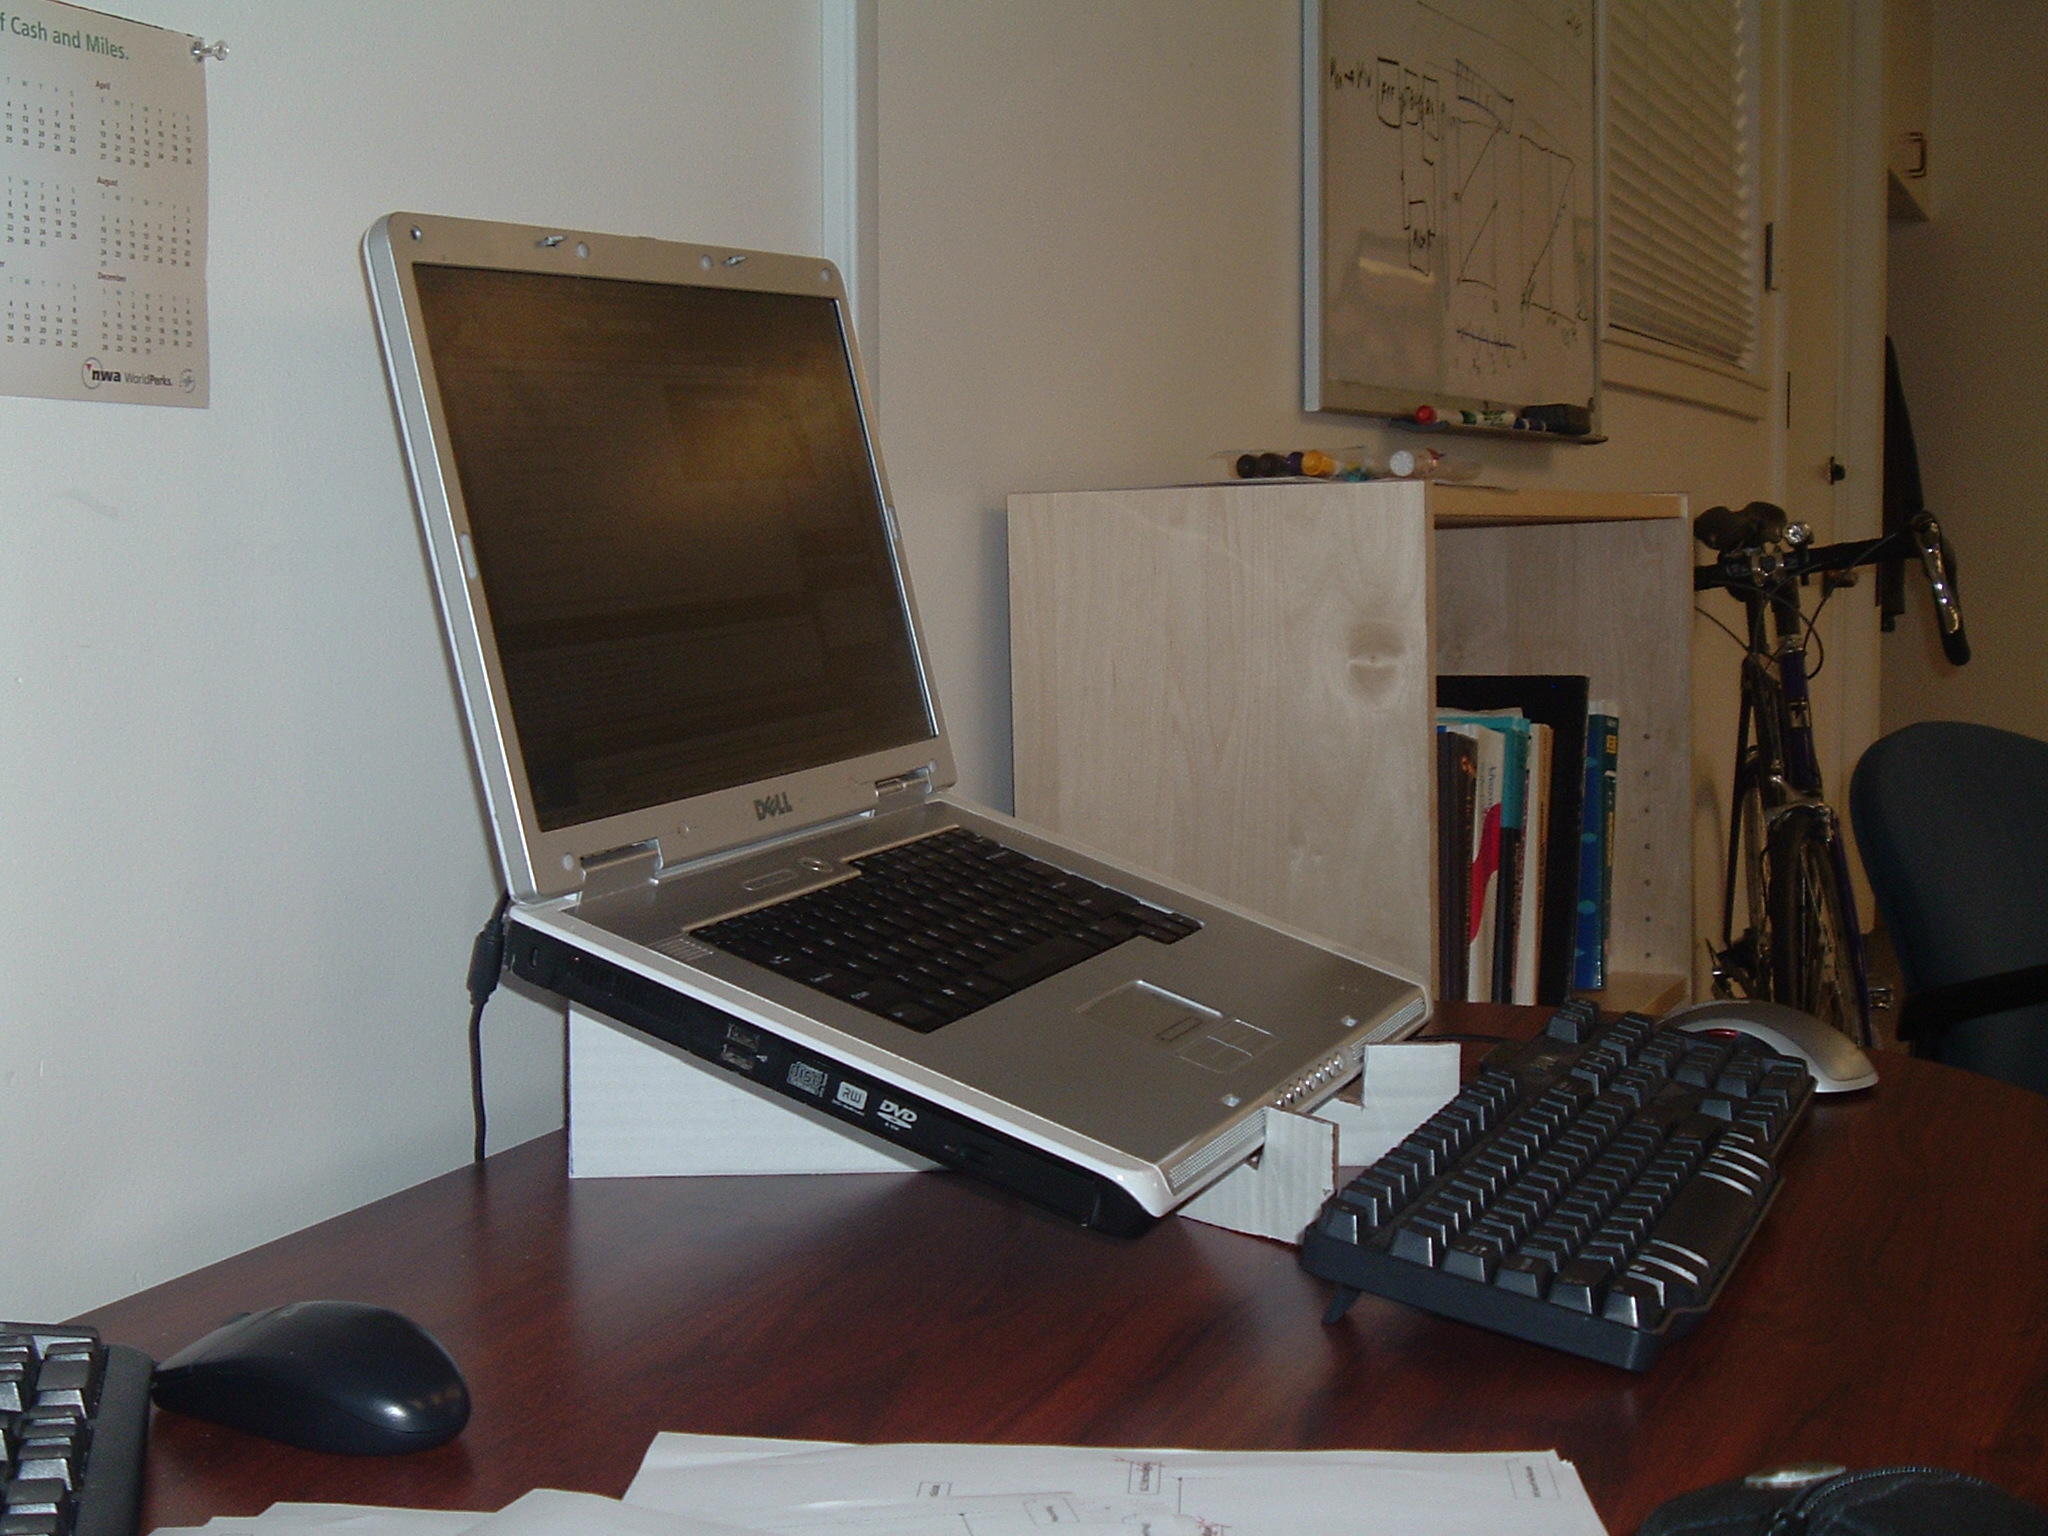 Make a Laptop Stand from Cardboard - The Quick and Easy Way